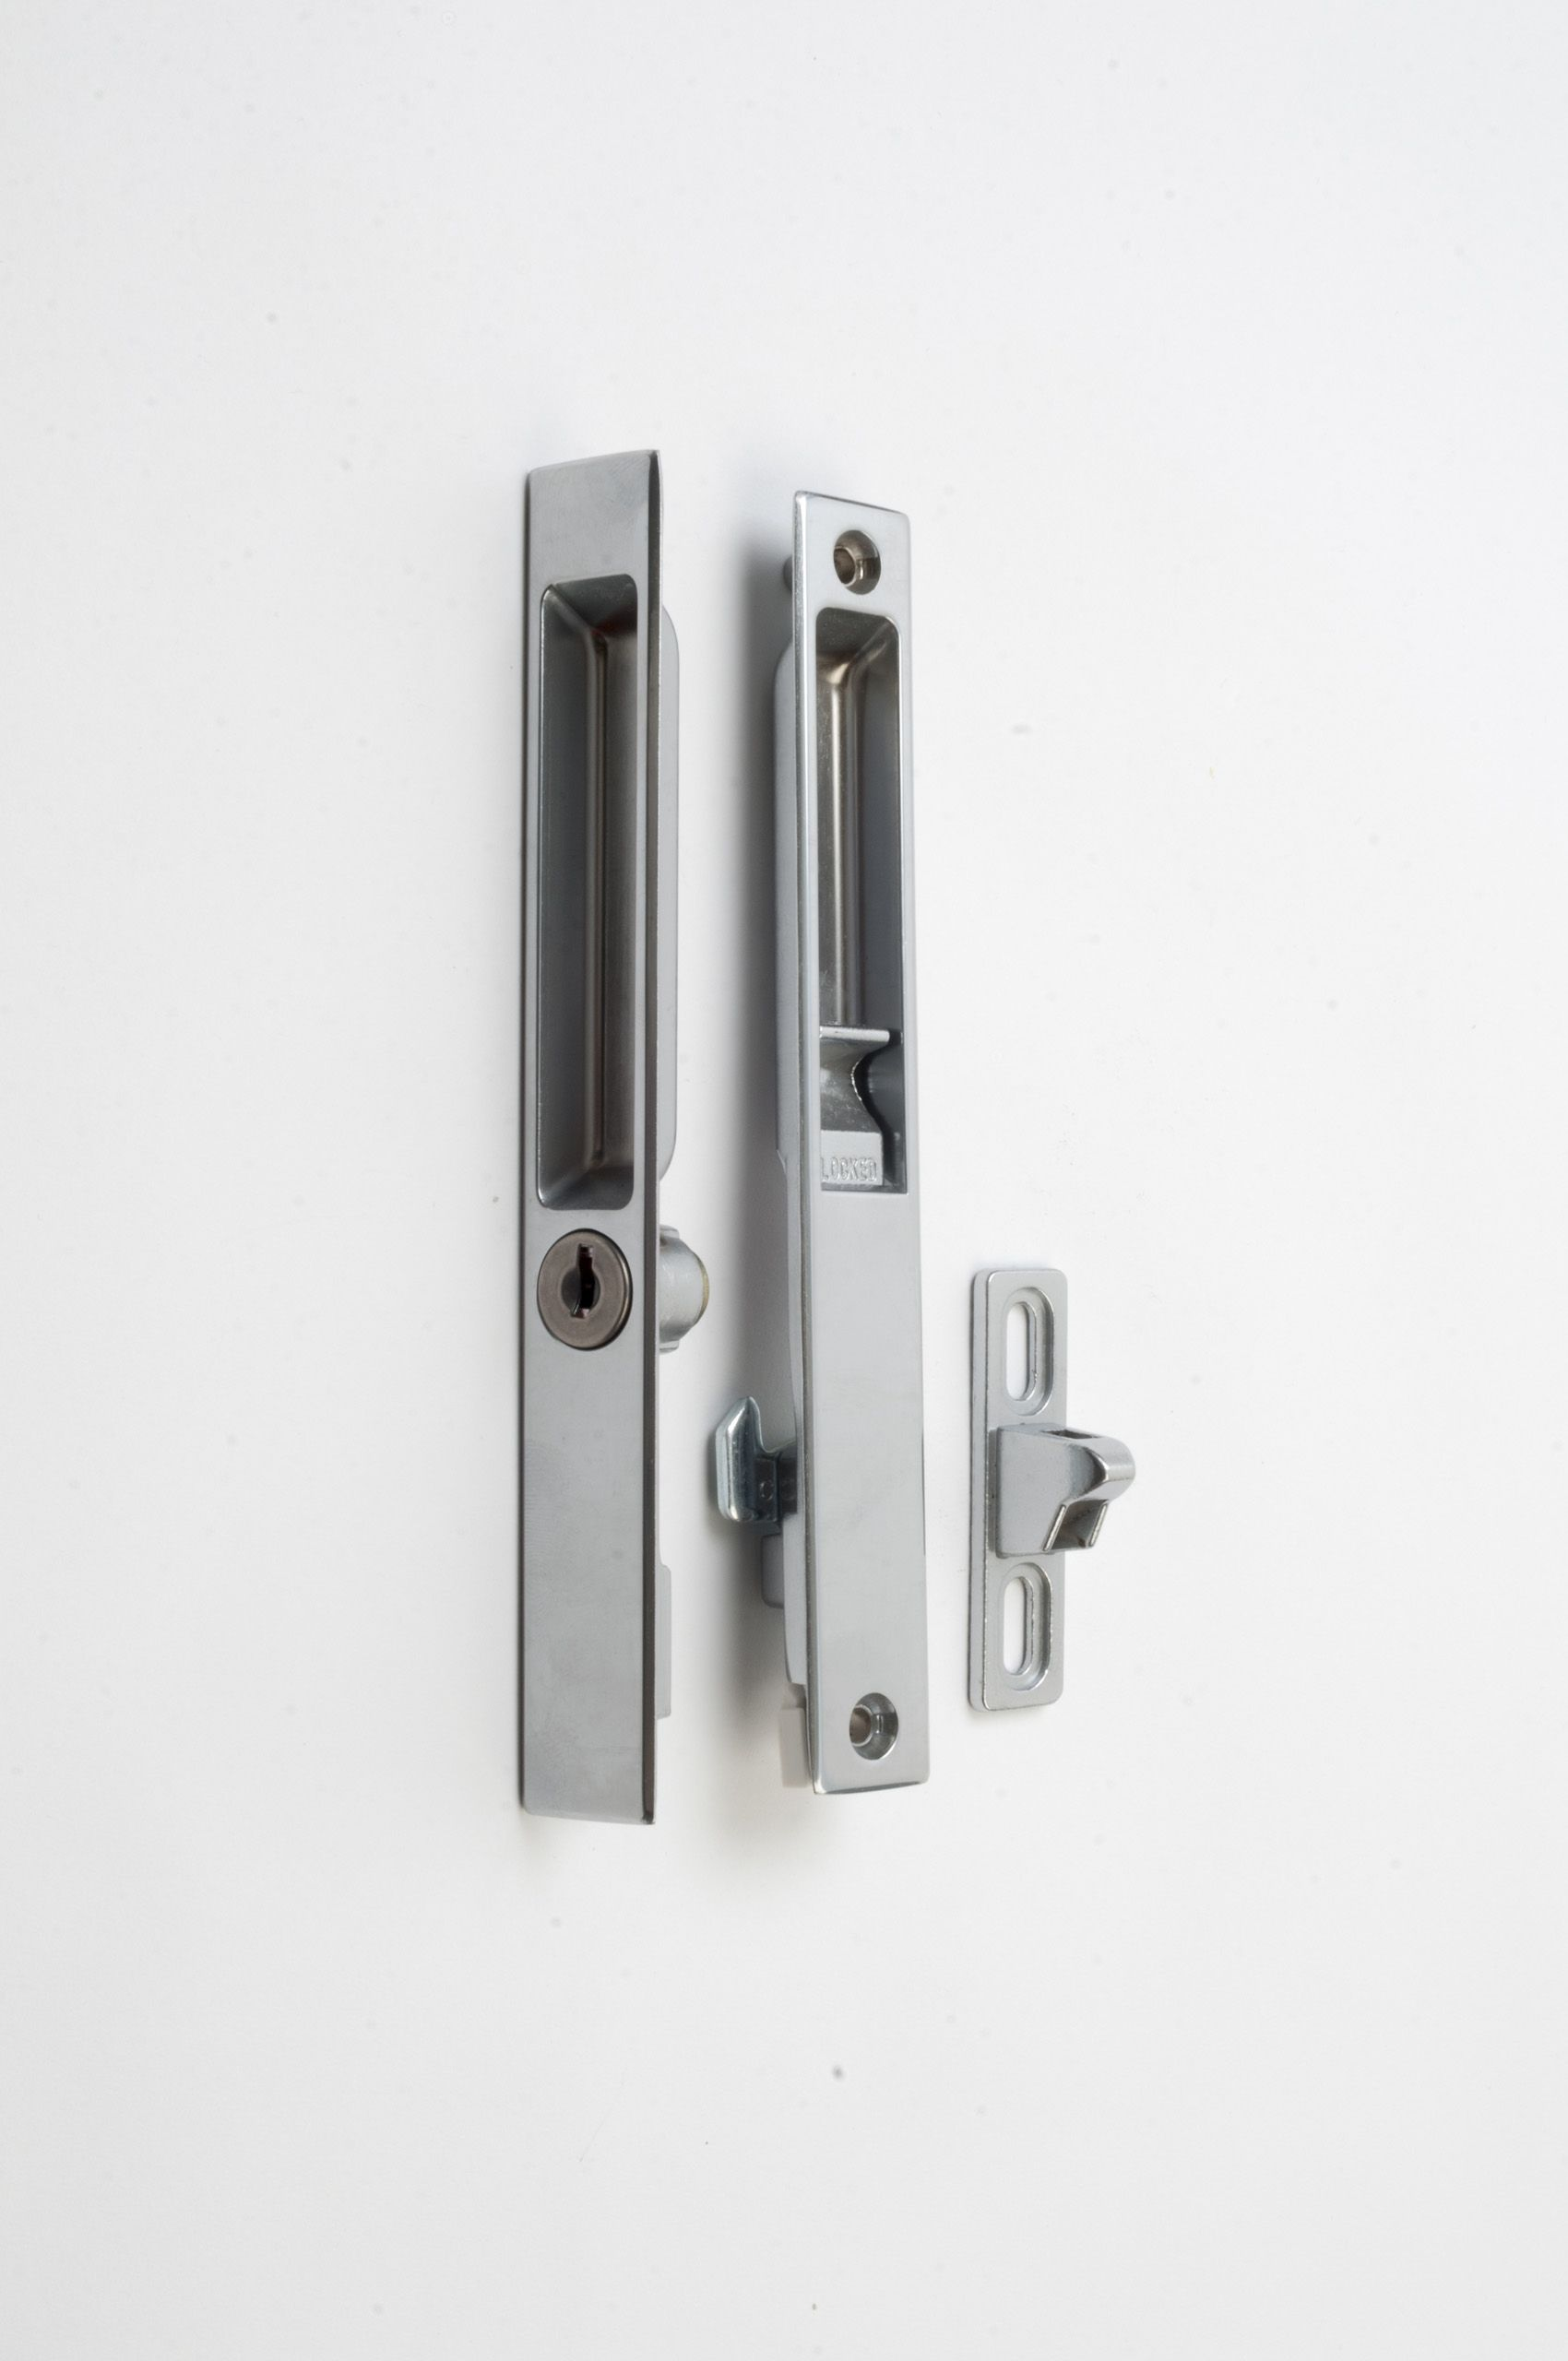 Le Meilleur Patio Sliding Door Lockset Kn*B Glass Door Lock Ce Mois Ci